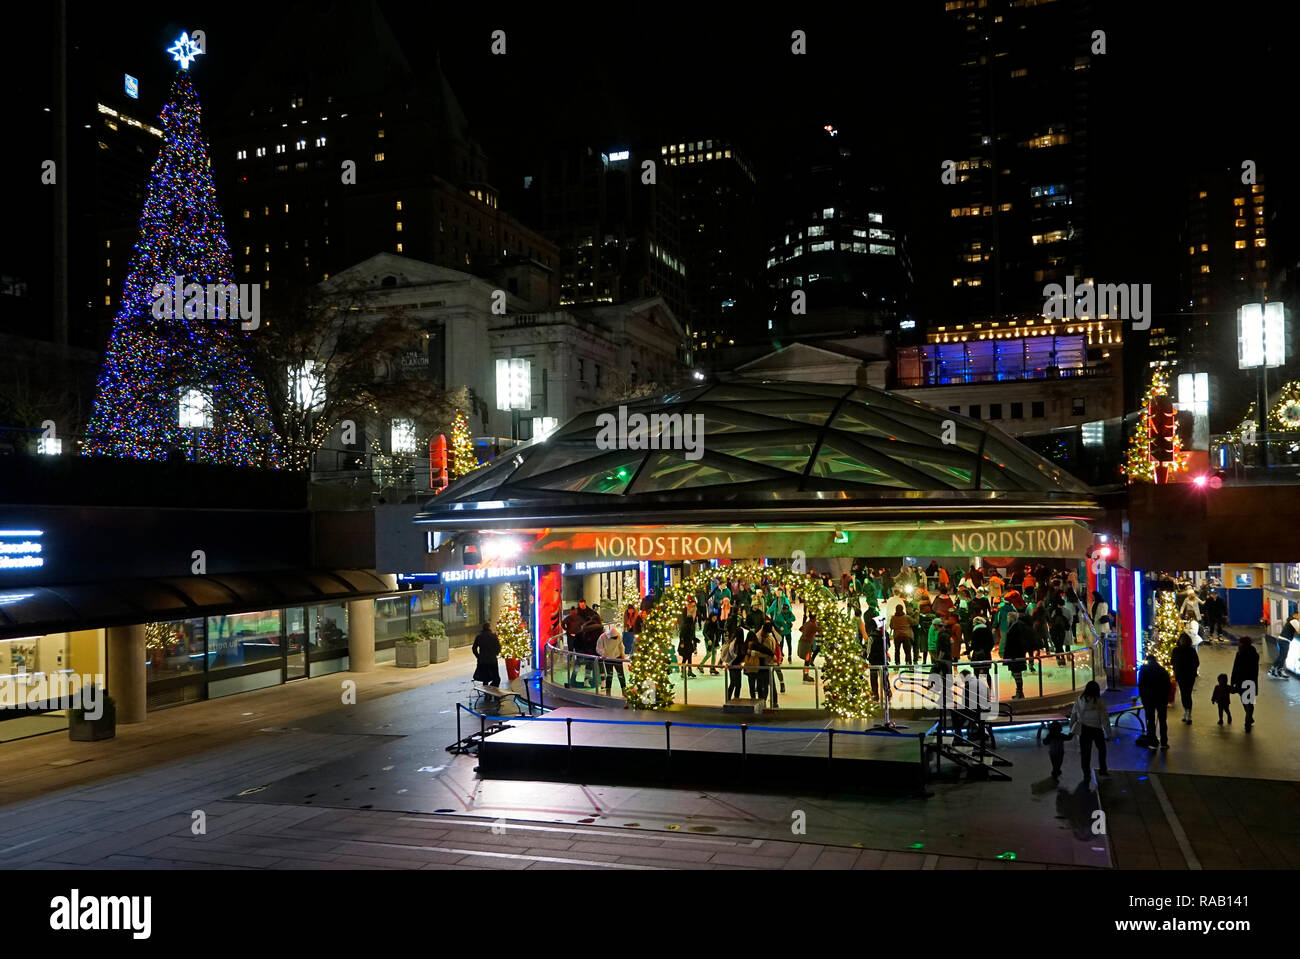 people-ice-skating-on-an-outdoor-rink-in